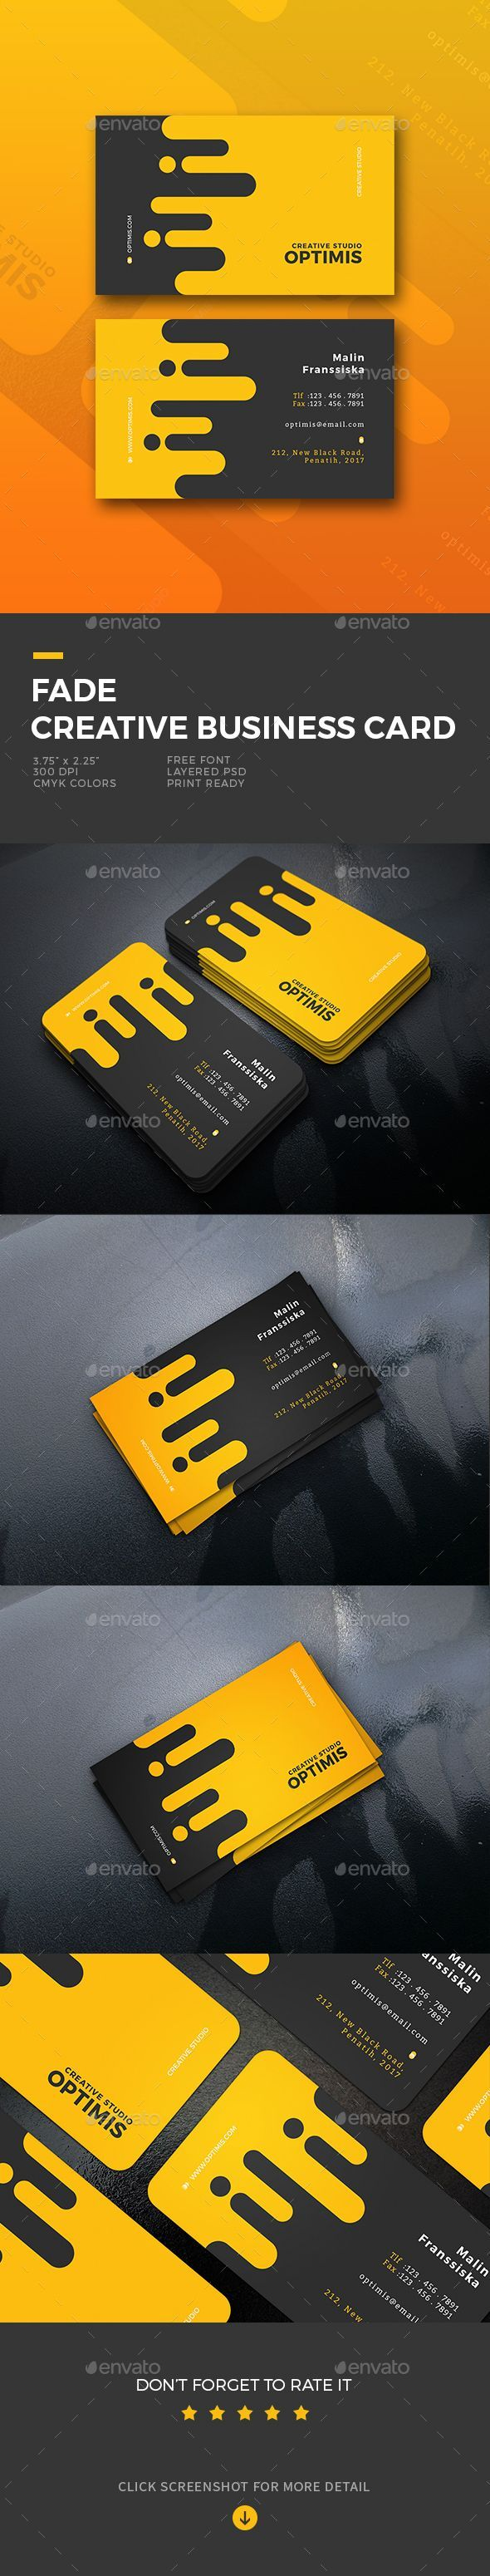 Best Business Cards Ideas On Pinterest Business Card Design - Round business card template